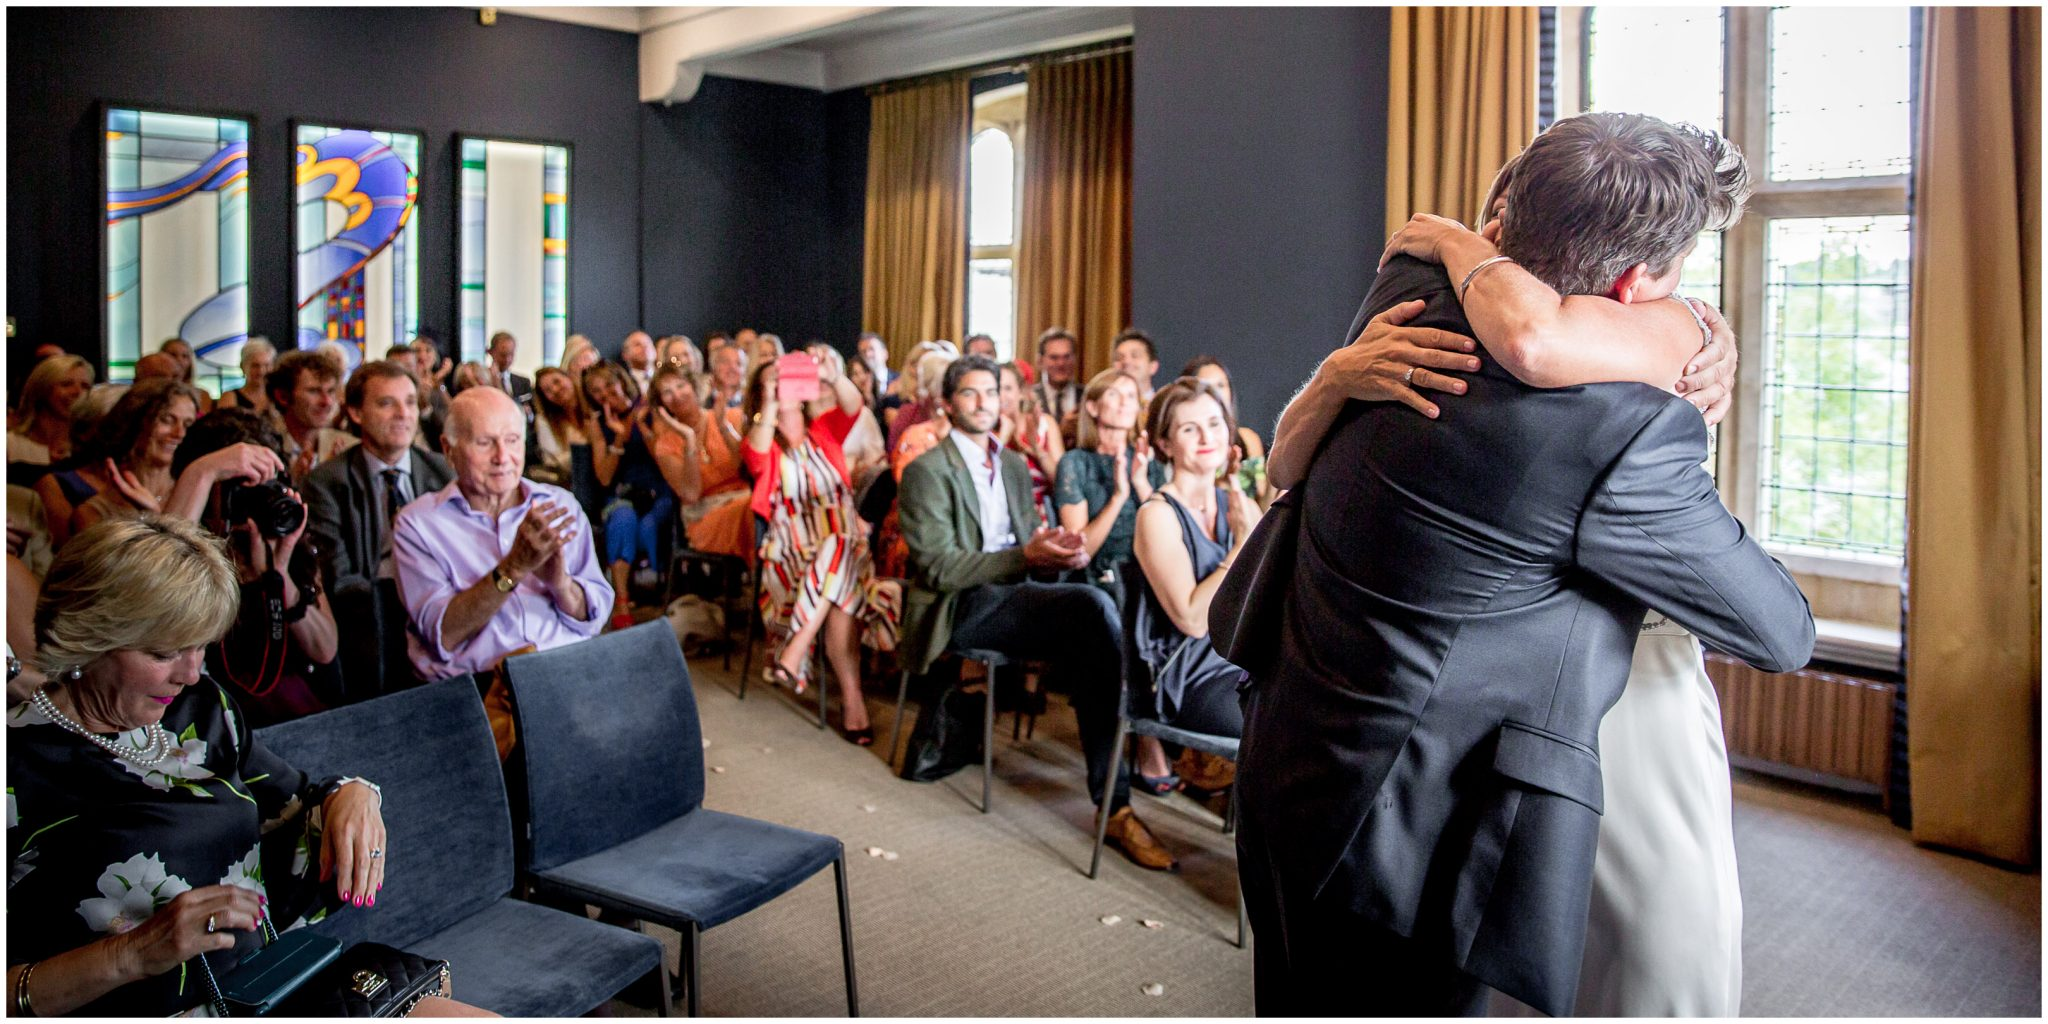 The newly married couple hug as their wedding guests applaud